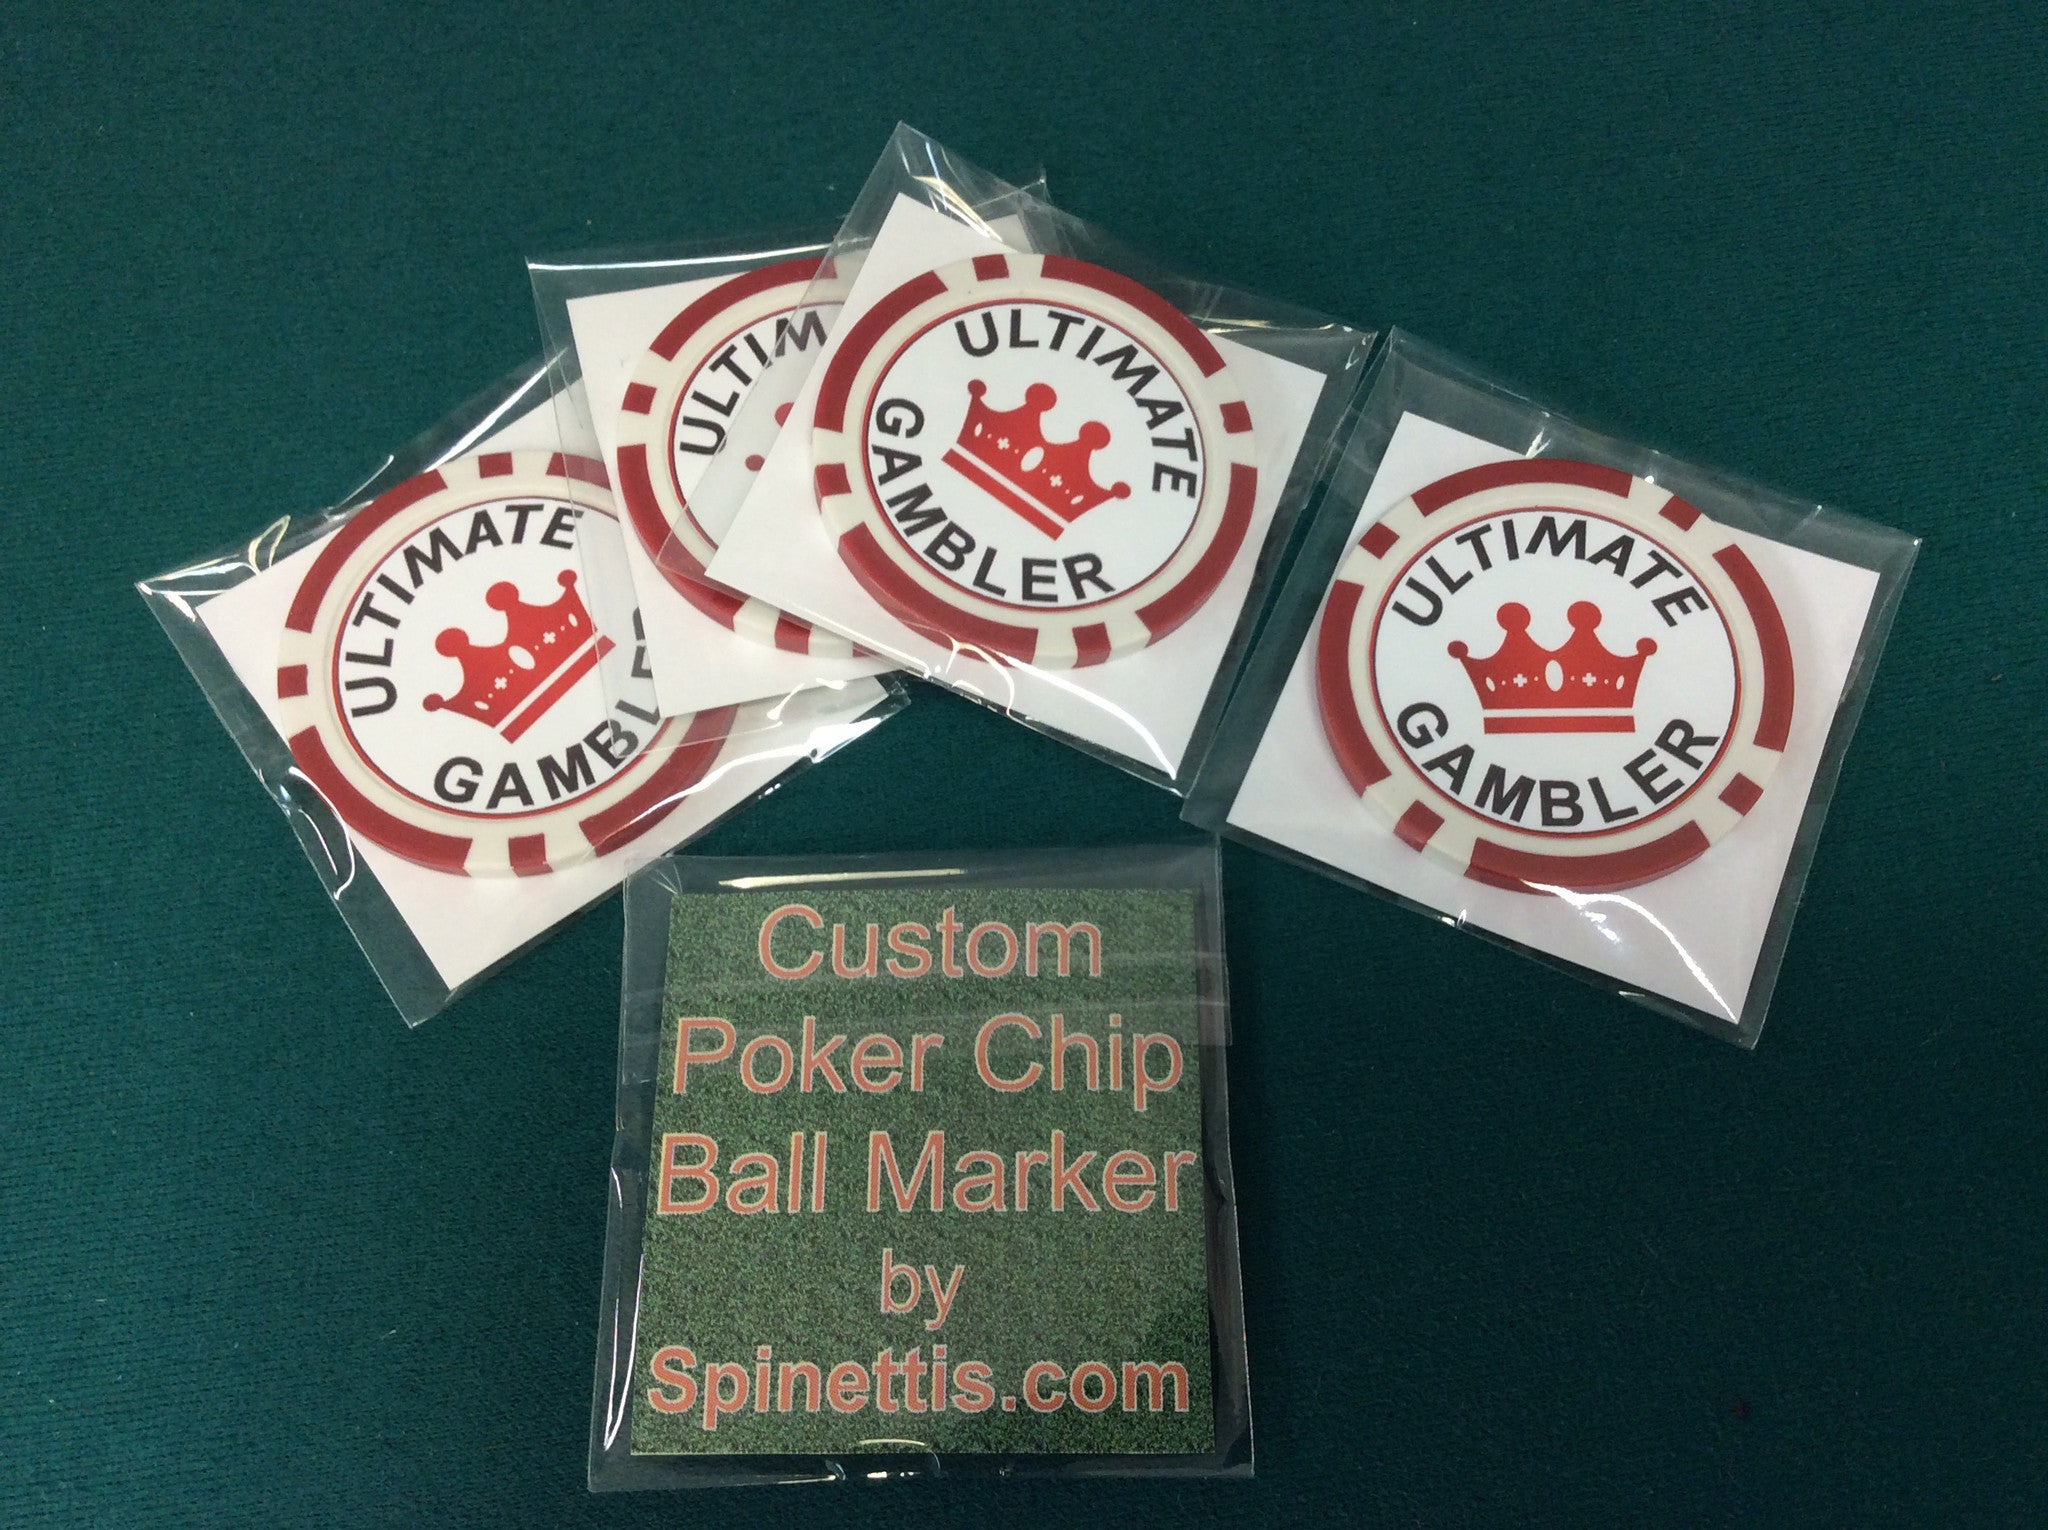 Custom Poker Chip Ball Marker for Golf (set of 5) - Spinettis Gaming - 1